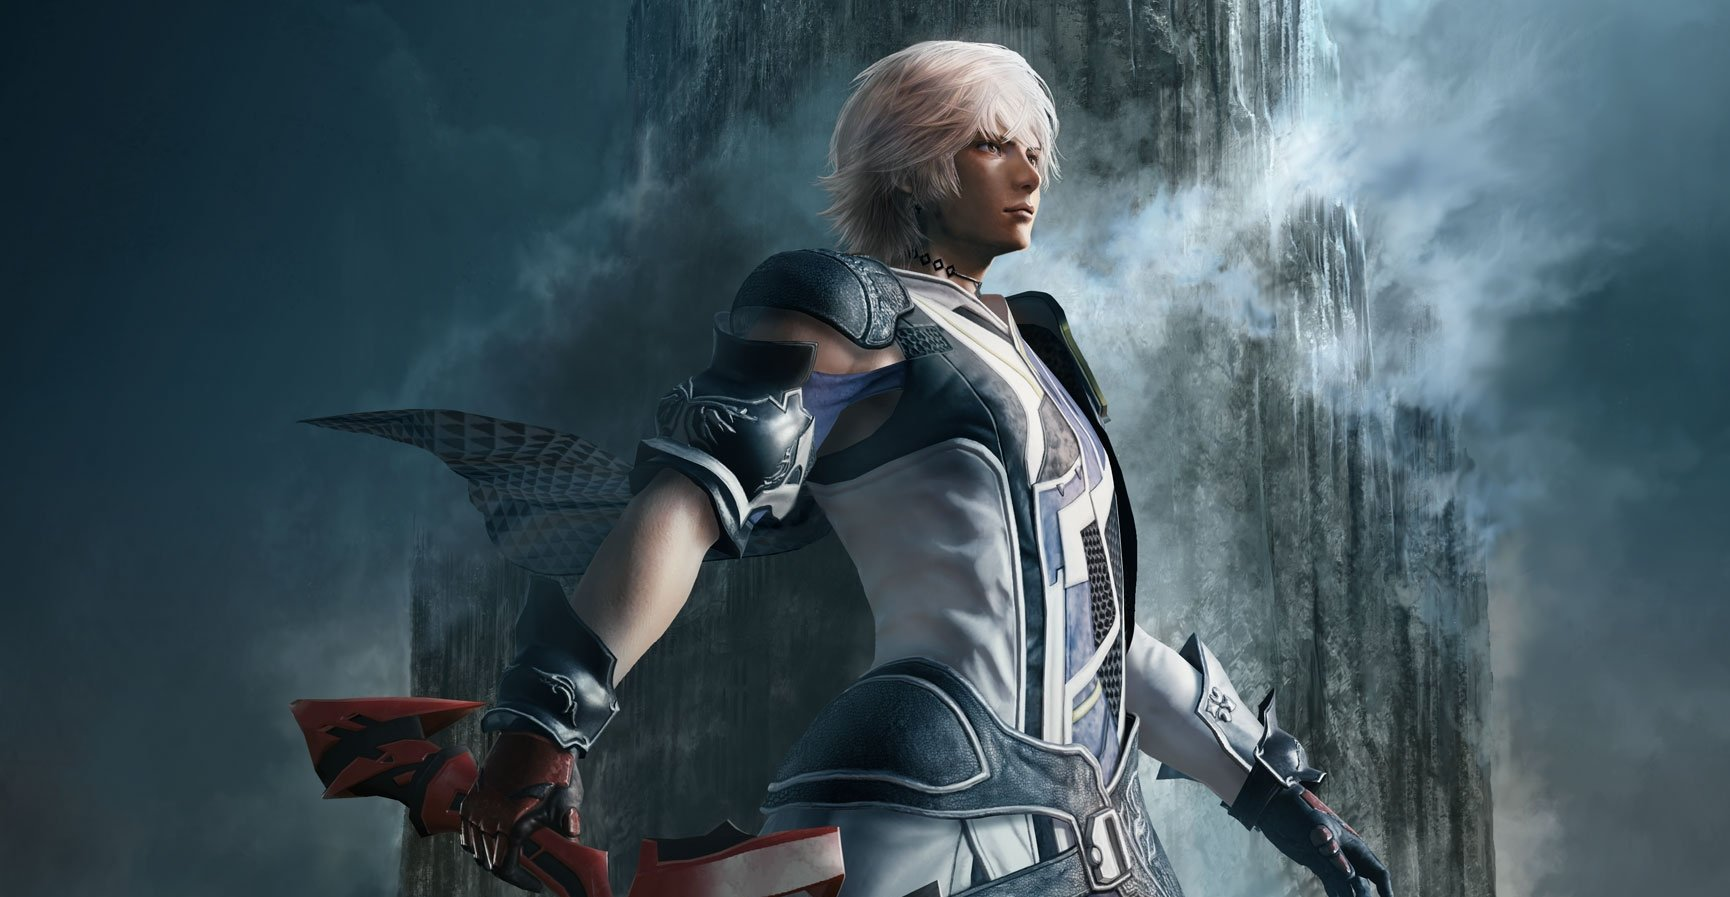 Square Enix Announces Recent Large Ban Wave For FFXIV Accounts Involved In Real Money Trading